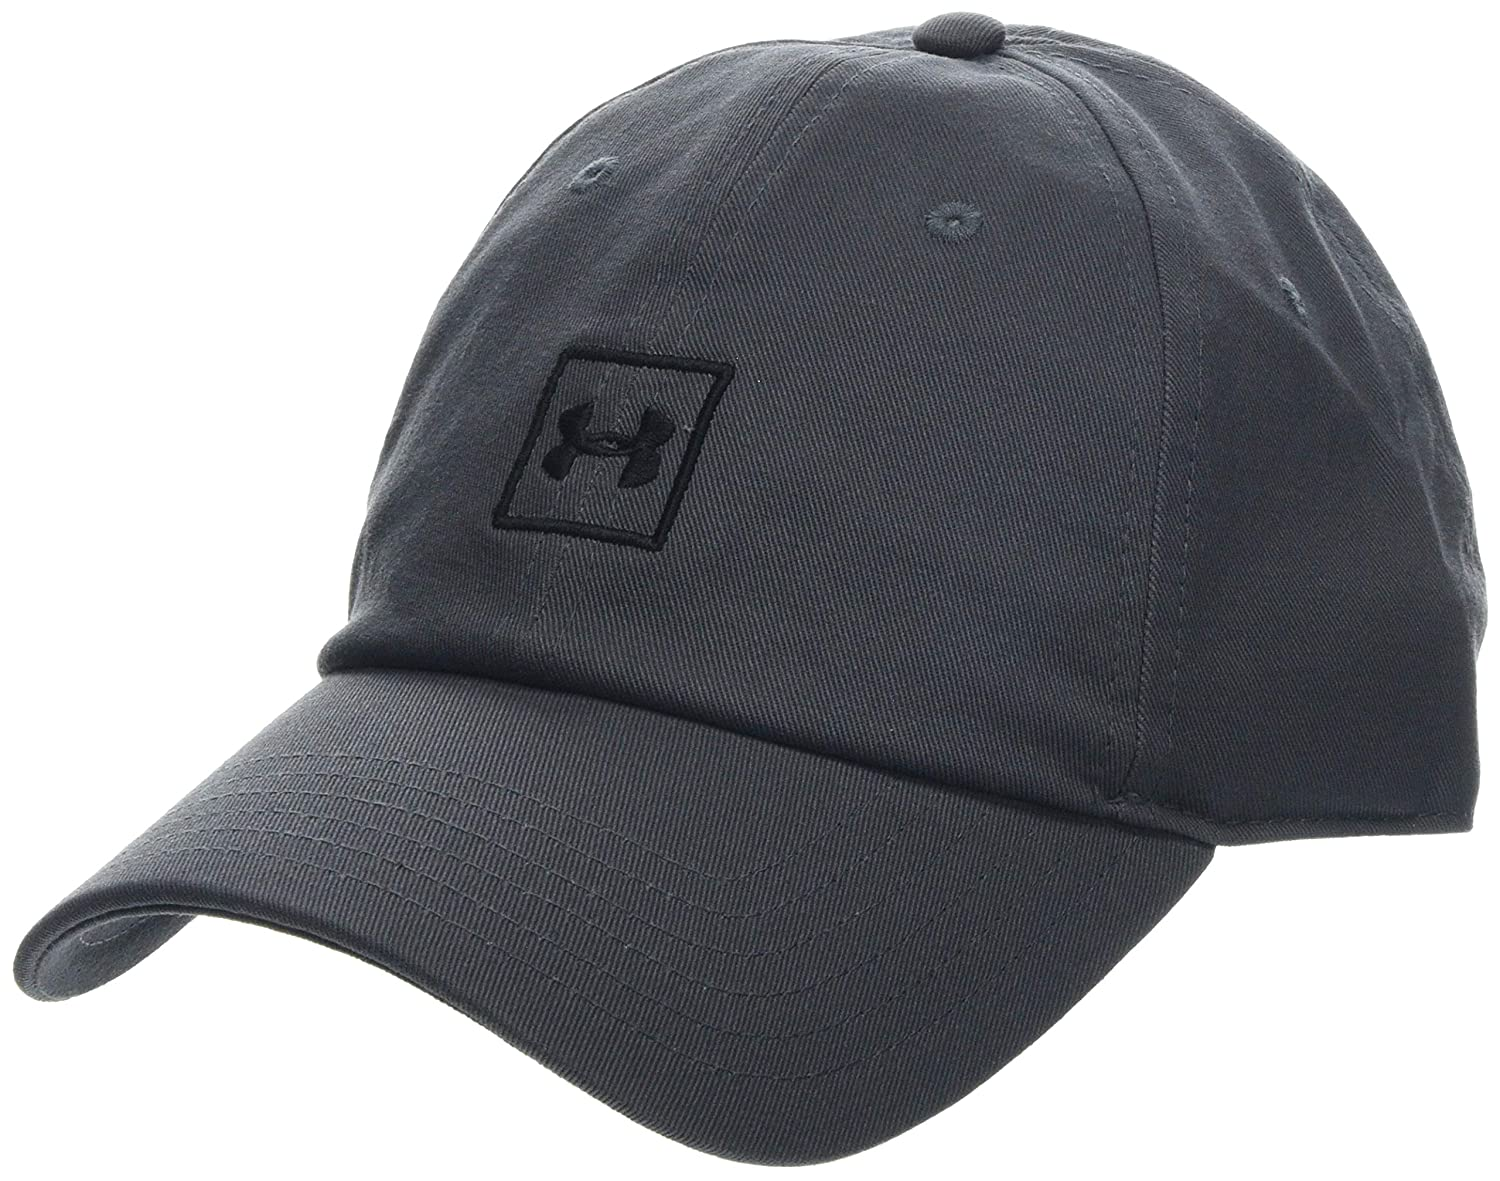 Under Armour Mens Washed Cotton Cap Gorra Hombre